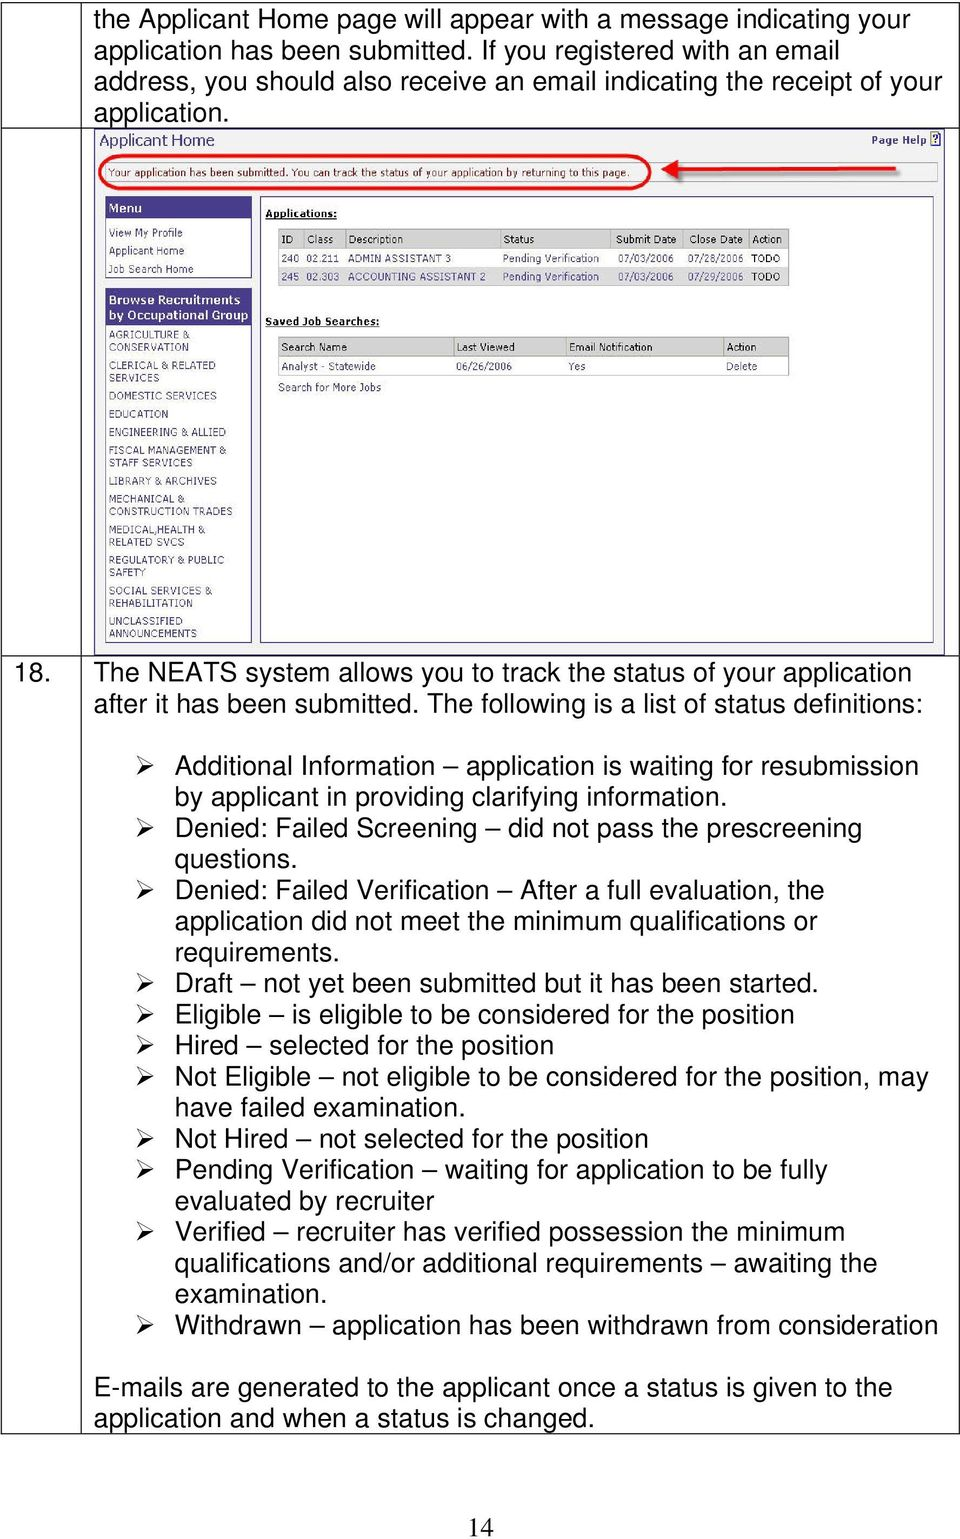 The NEATS system allows you to track the status of your application after it has been submitted.